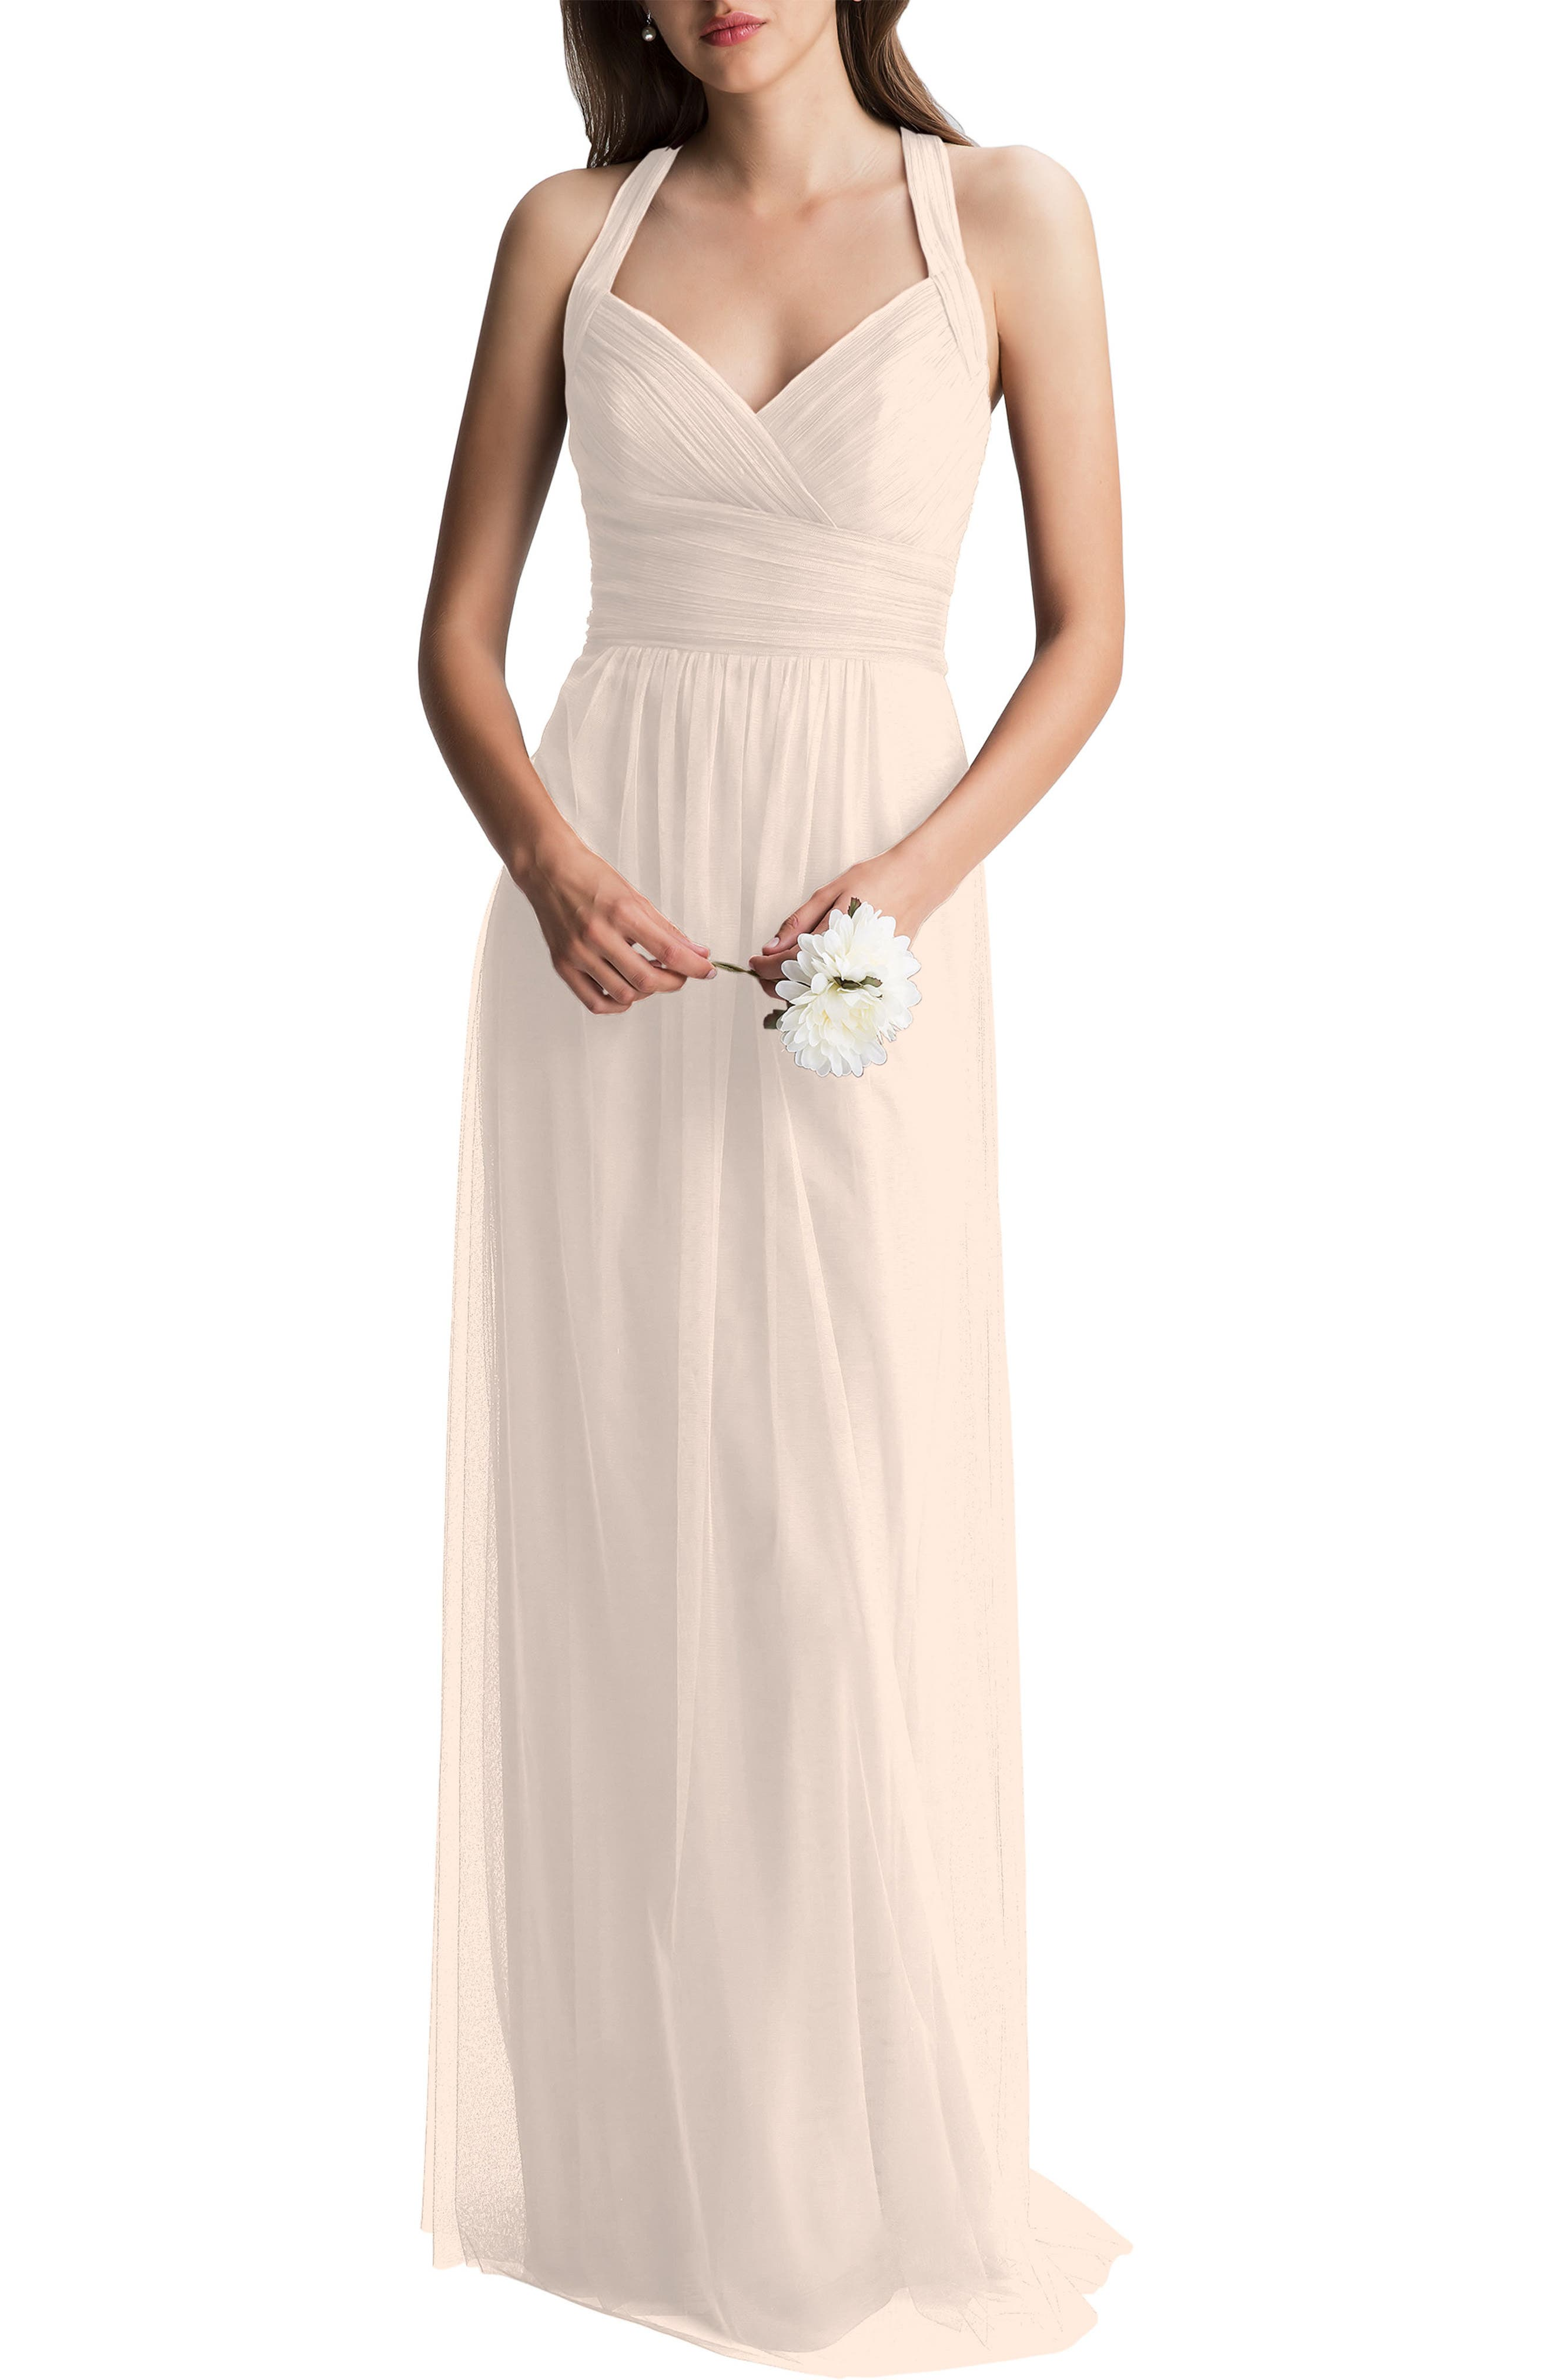 #levkoff Crisscross Strap English Net A-Line Gown, 8 (similar to 16W) - Pink